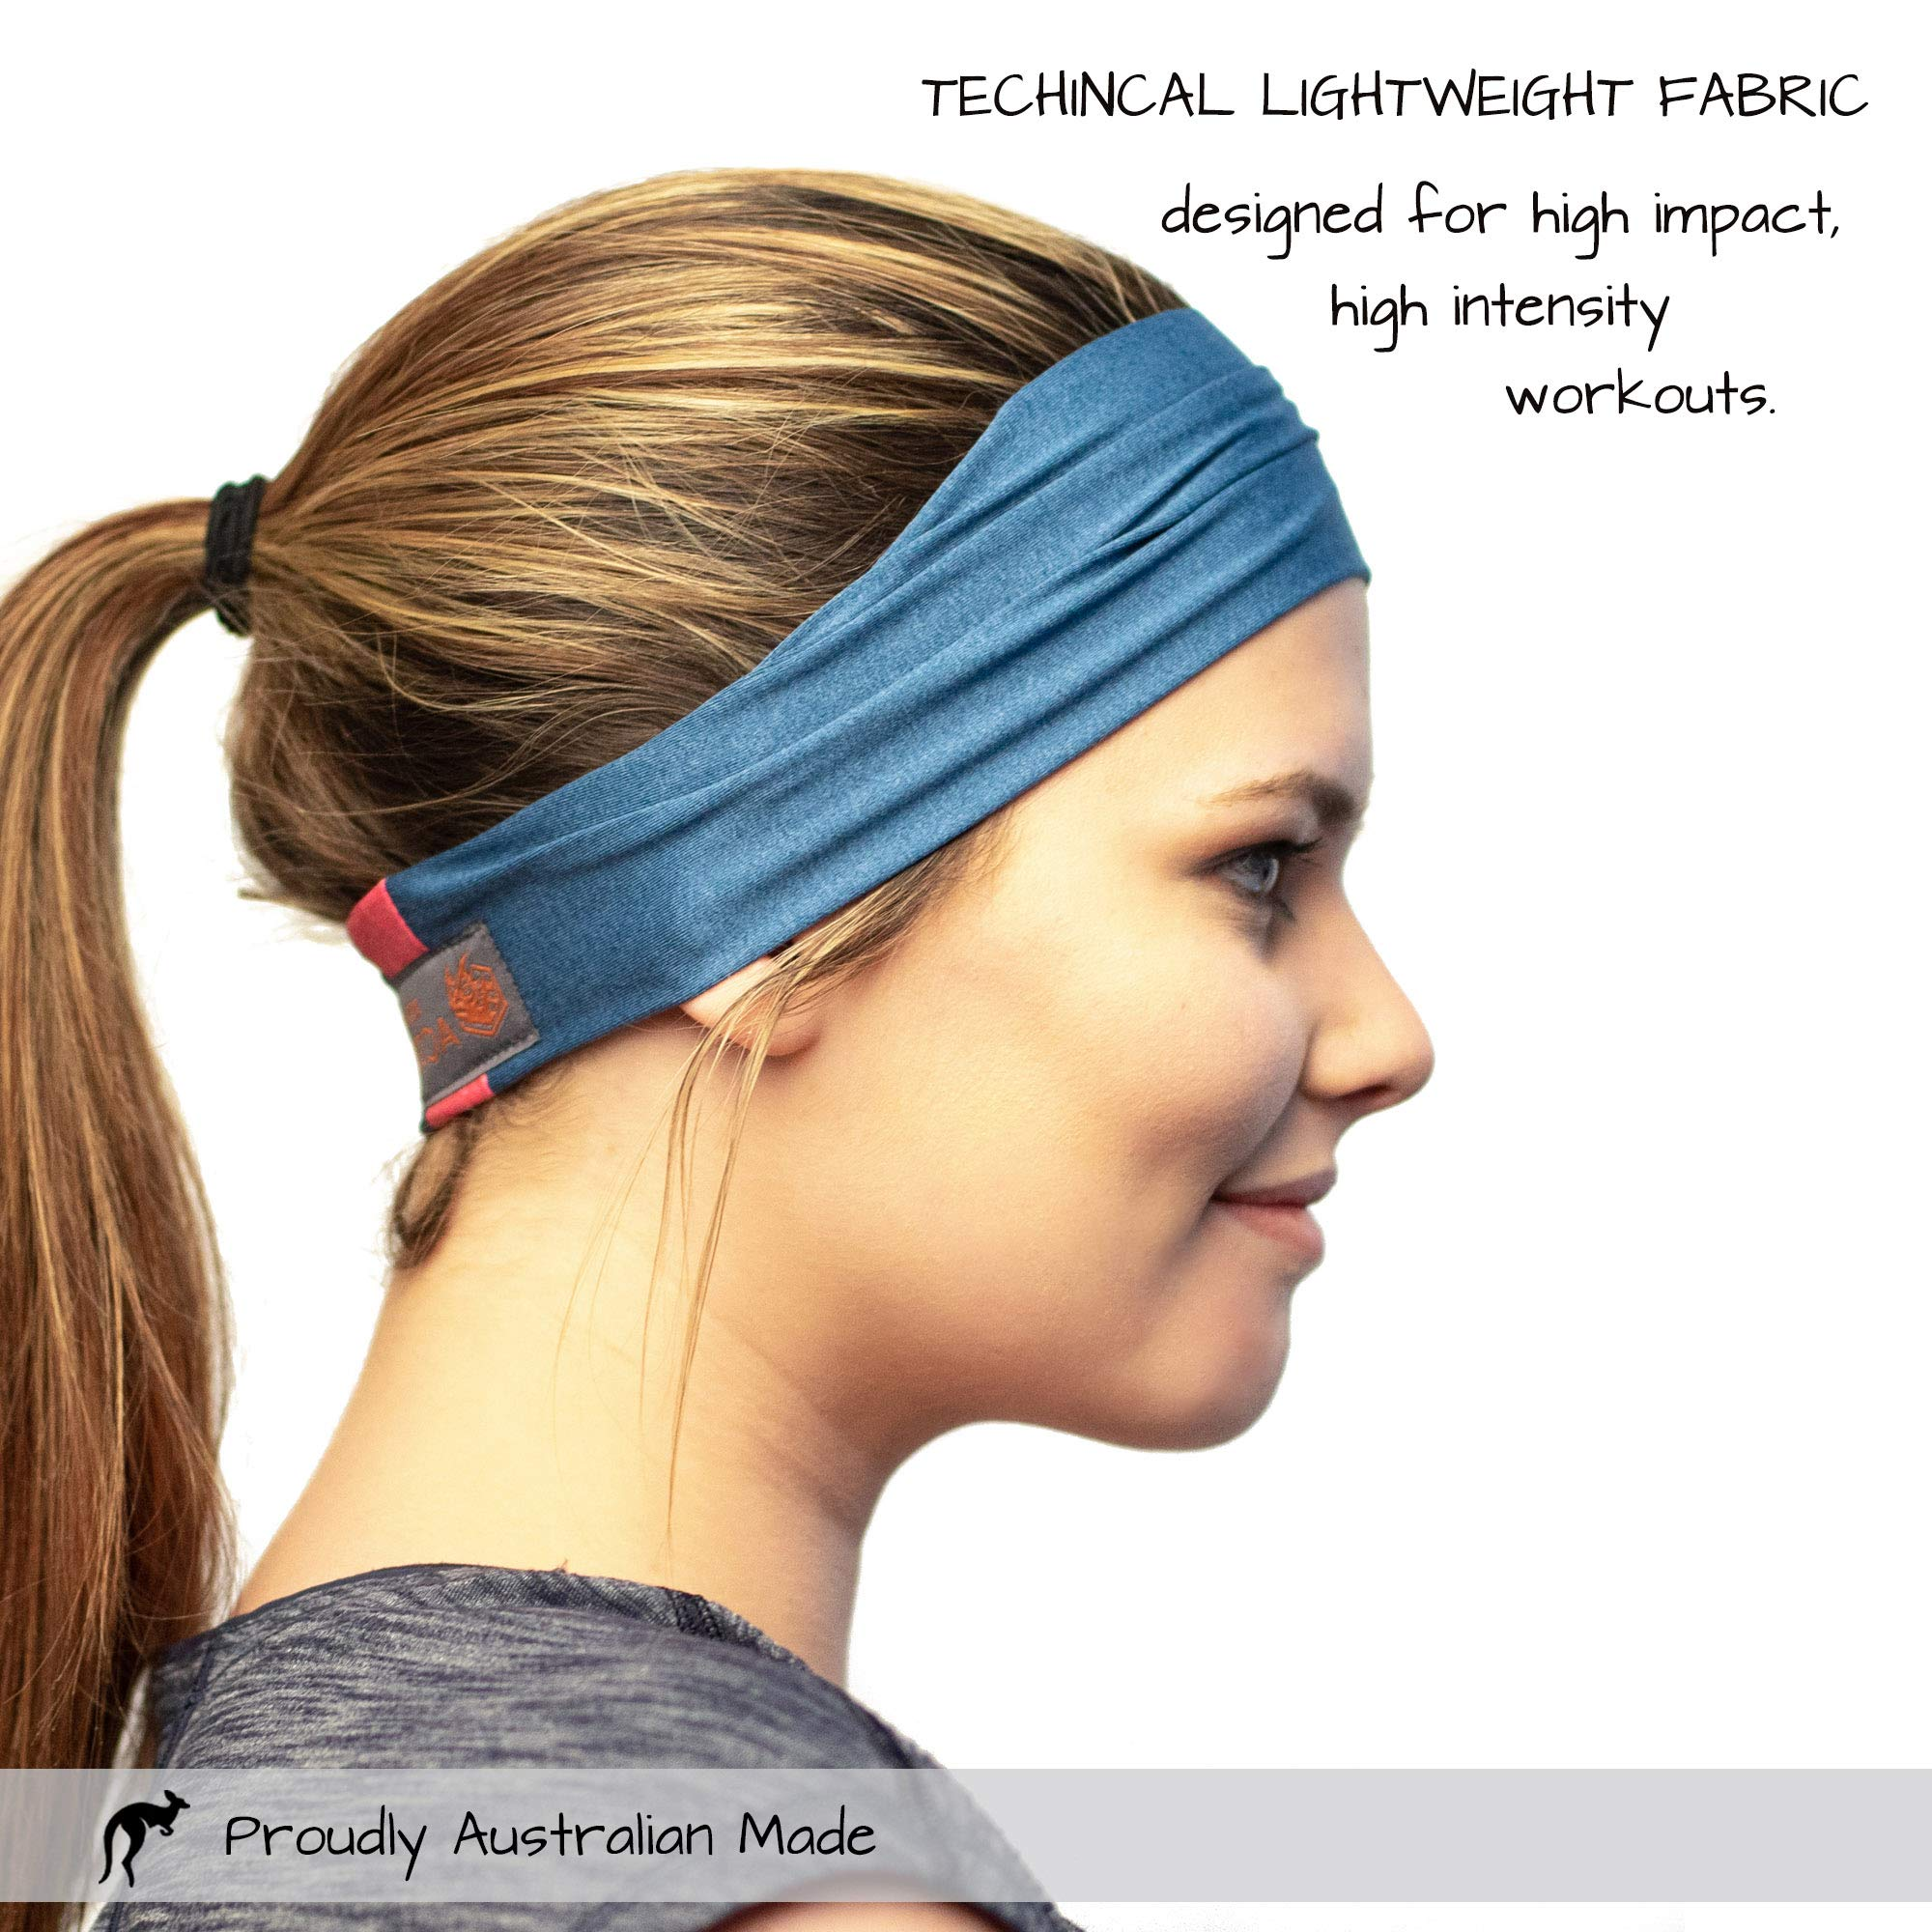 Red Dust Active Workout Headband - Ideal for Sports, Fitness, Running, The Gym & Yoga - Moisture Wicking - Non-Slip - Exercise Sweatband - Designed for Versatility & The Active Women by Red Dust Active (Image #2)